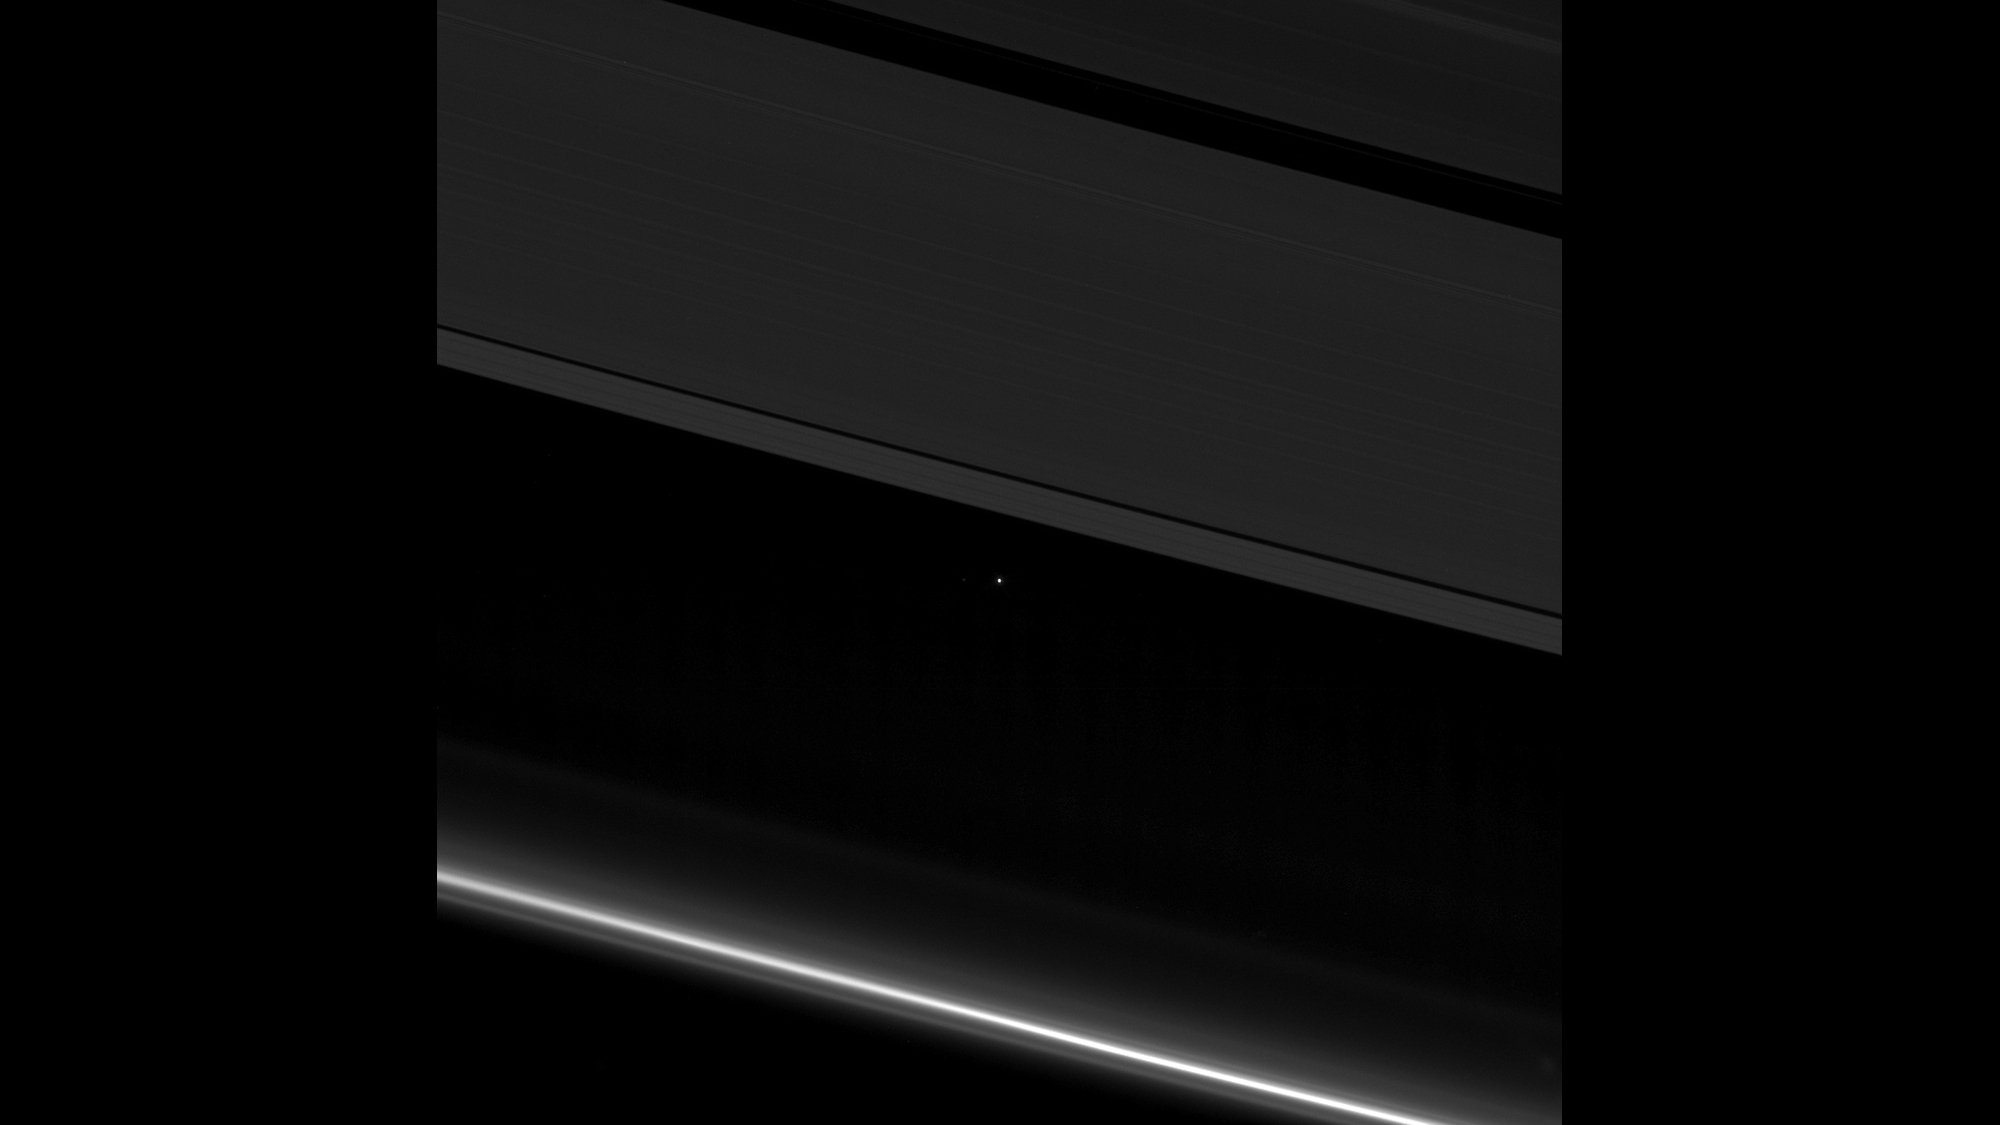 170420194948 Earth Between Rings Of Saturn